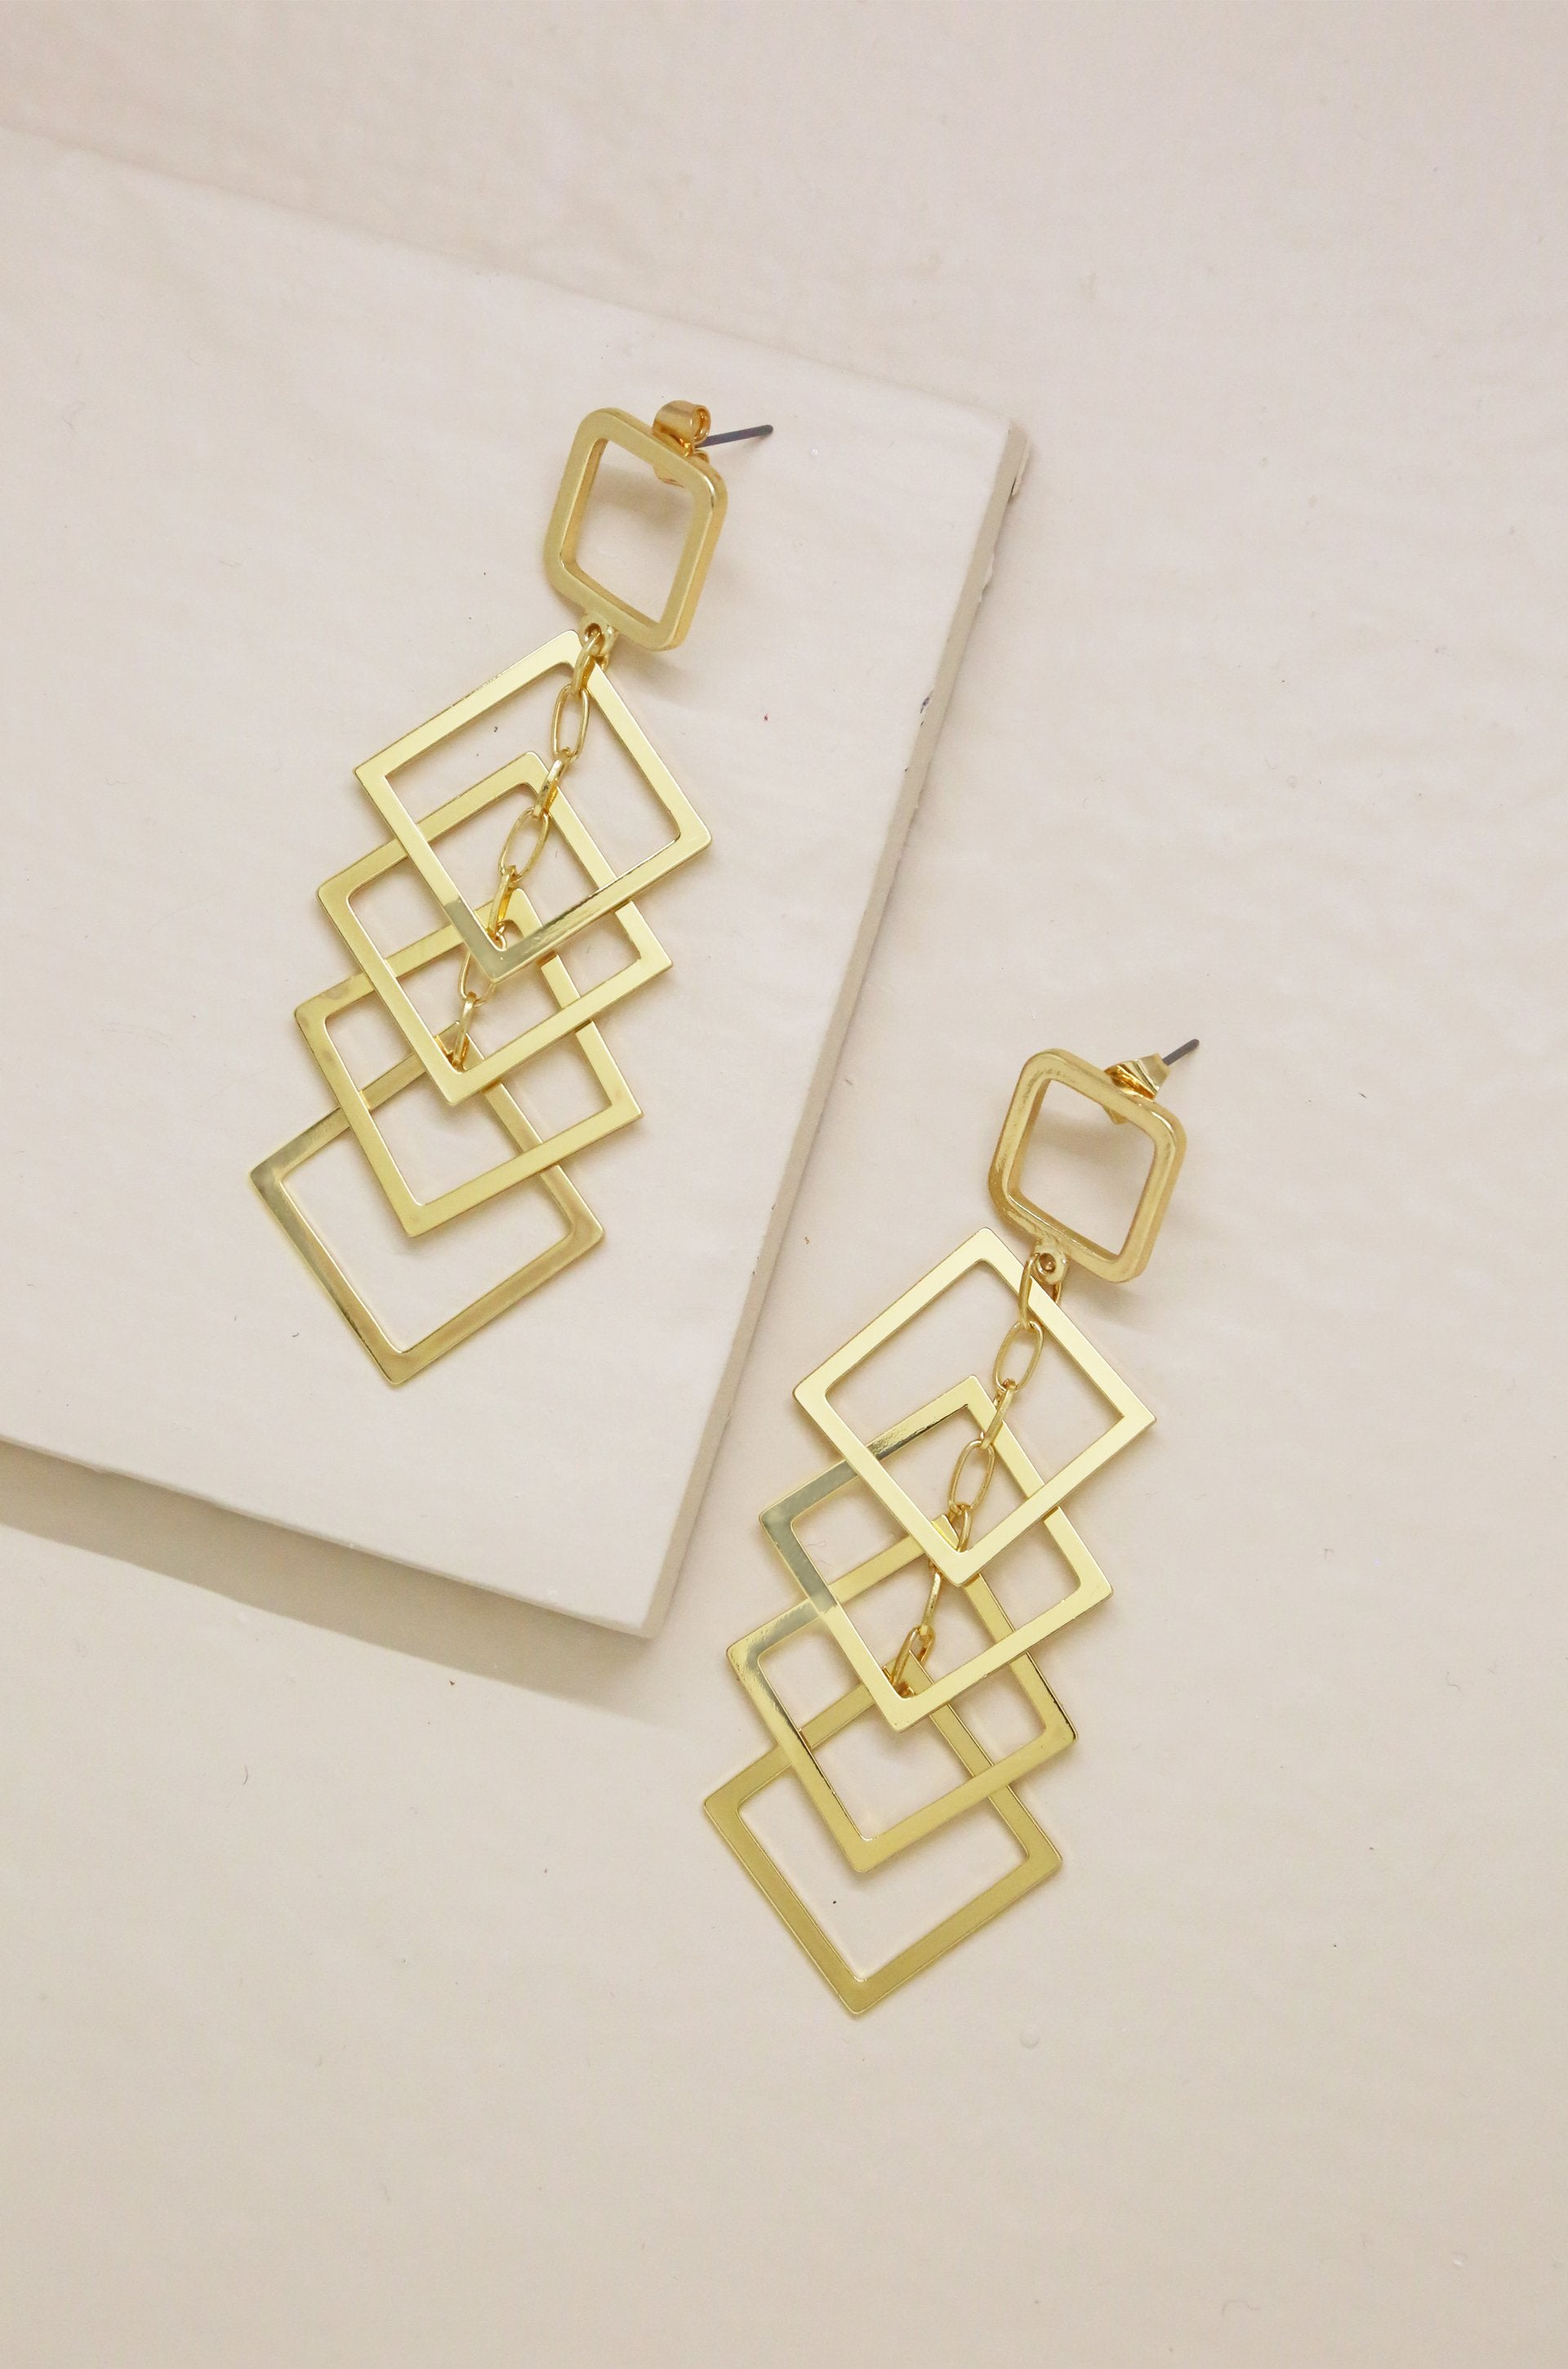 Dangling Diamond Shape Drop 18k Gold Plated Earrings - Vanessa Stylez Boutique